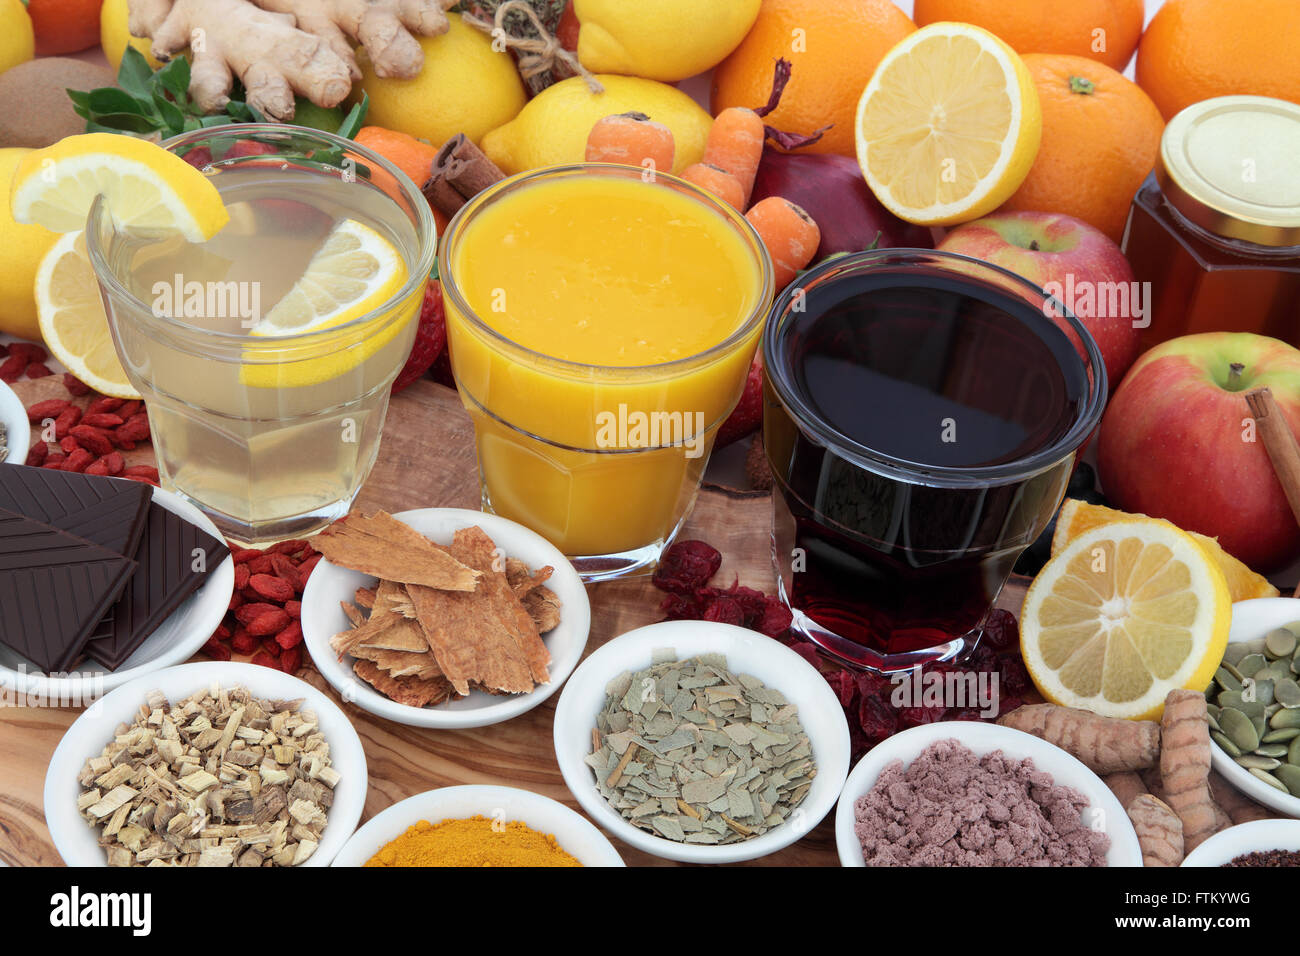 health food and driks Find healthy, delicious drink recipes including smoothies & shakes, juice recipes, tea, lemonade and more healthier recipes, from the food and nutrition experts at eatingwell.